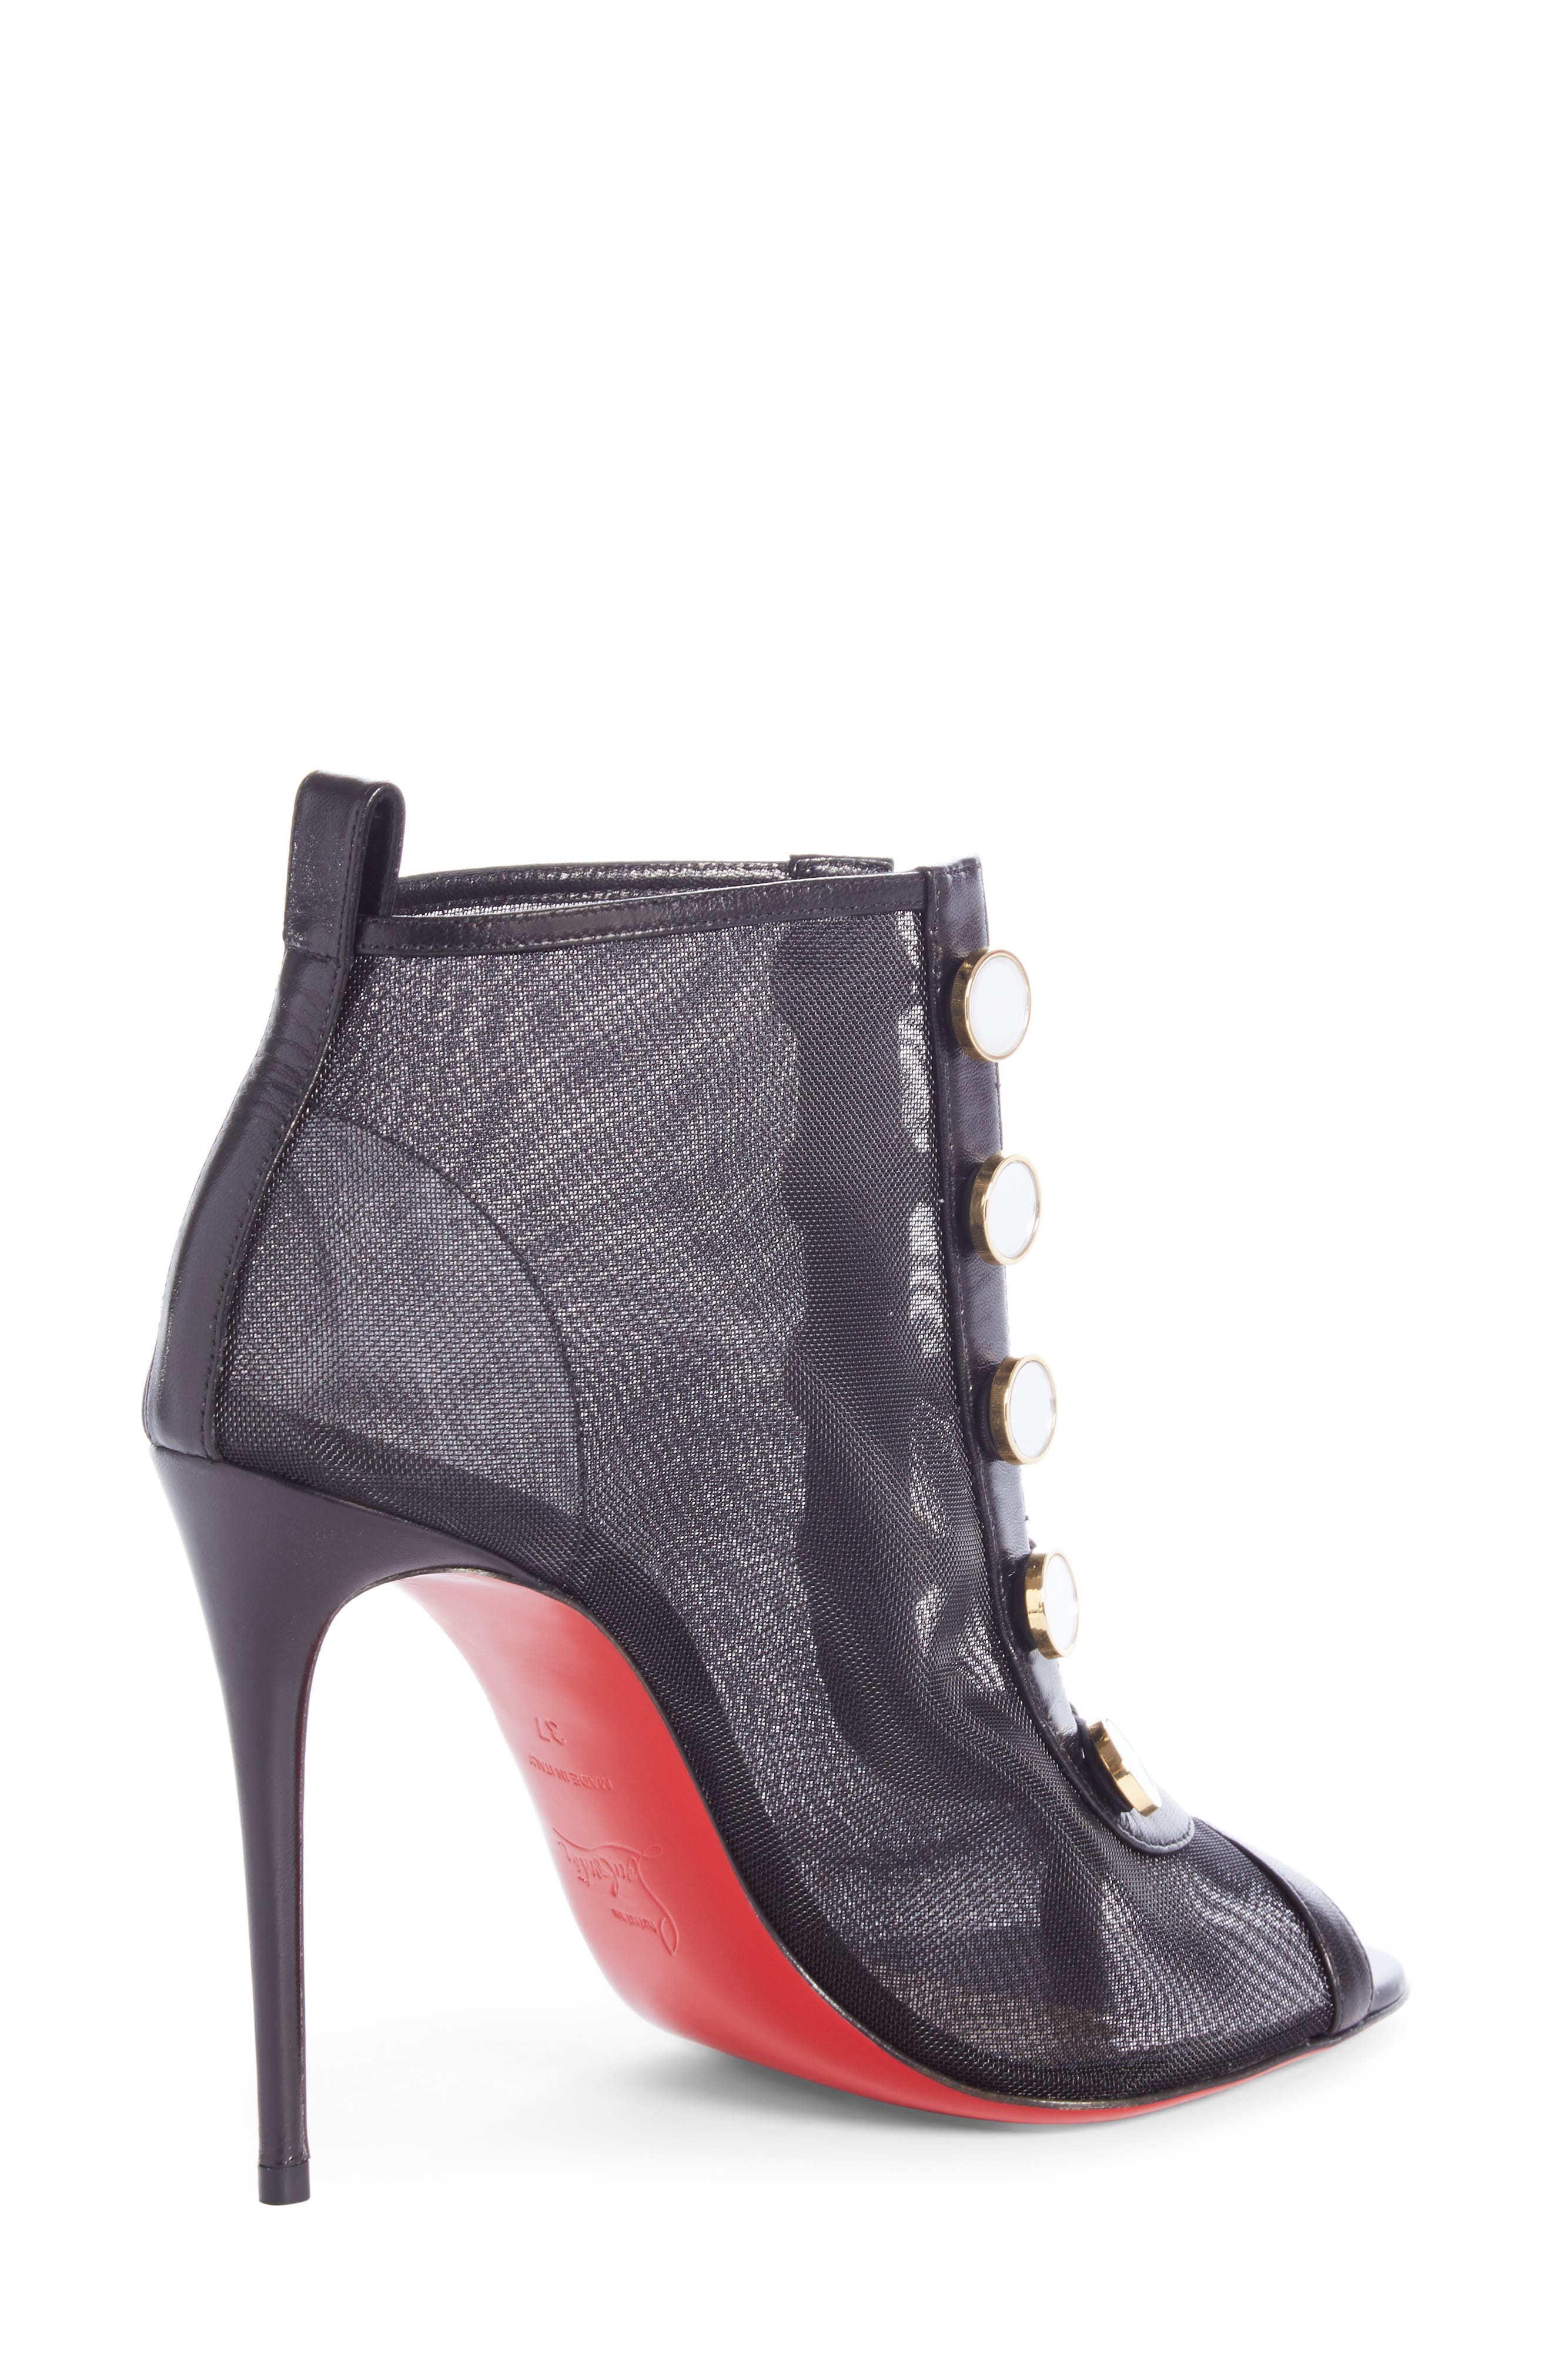 CHRISTIAN LOUBOUTIN, Marika Open Toe Bootie, Alternate thumbnail 2, color, BLACK